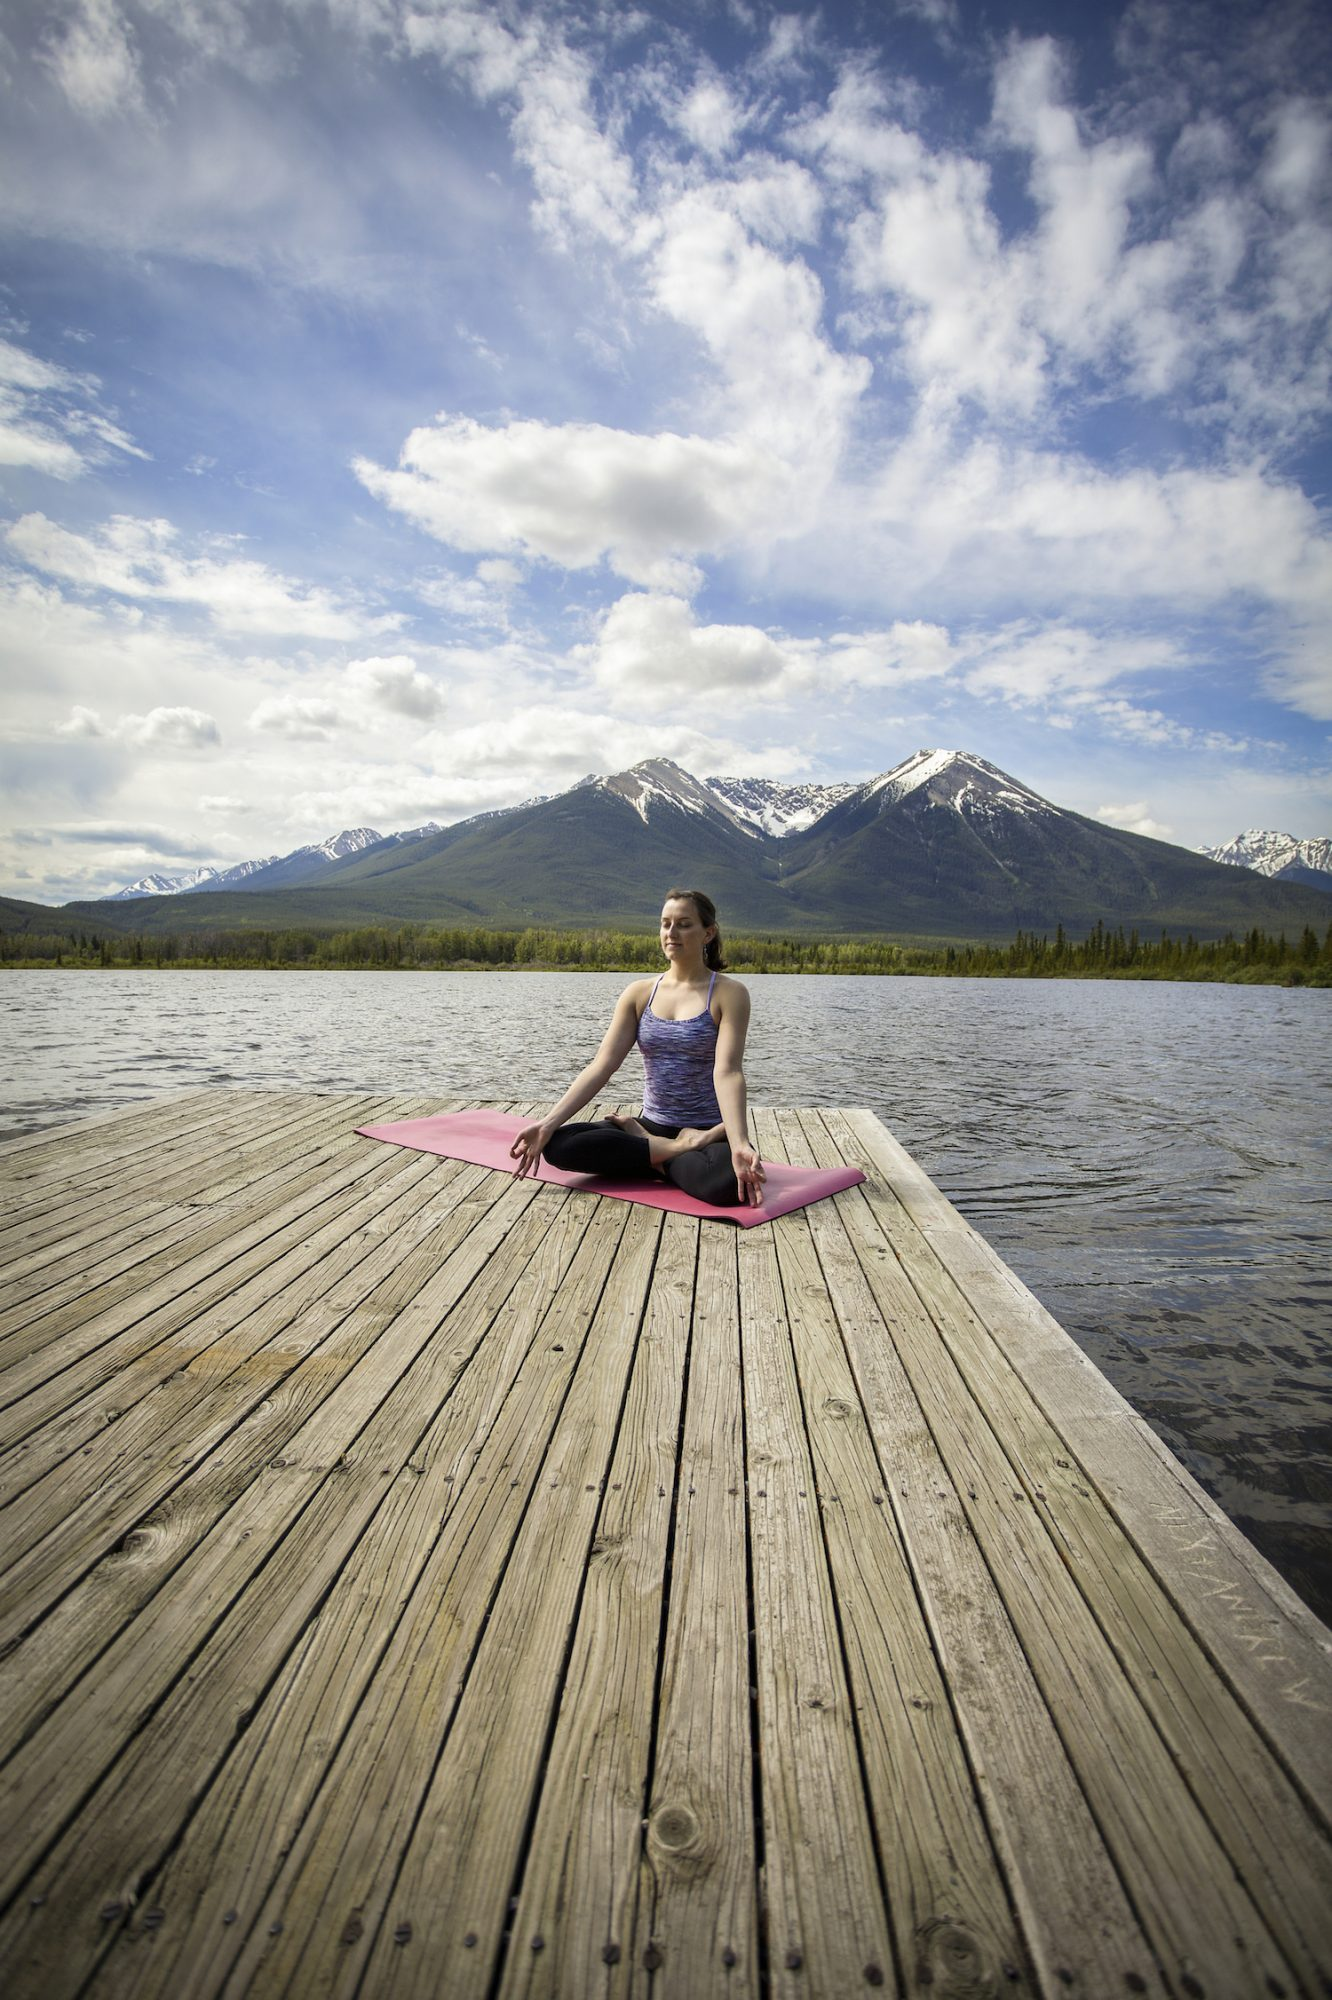 woman meditating on dock in mountains